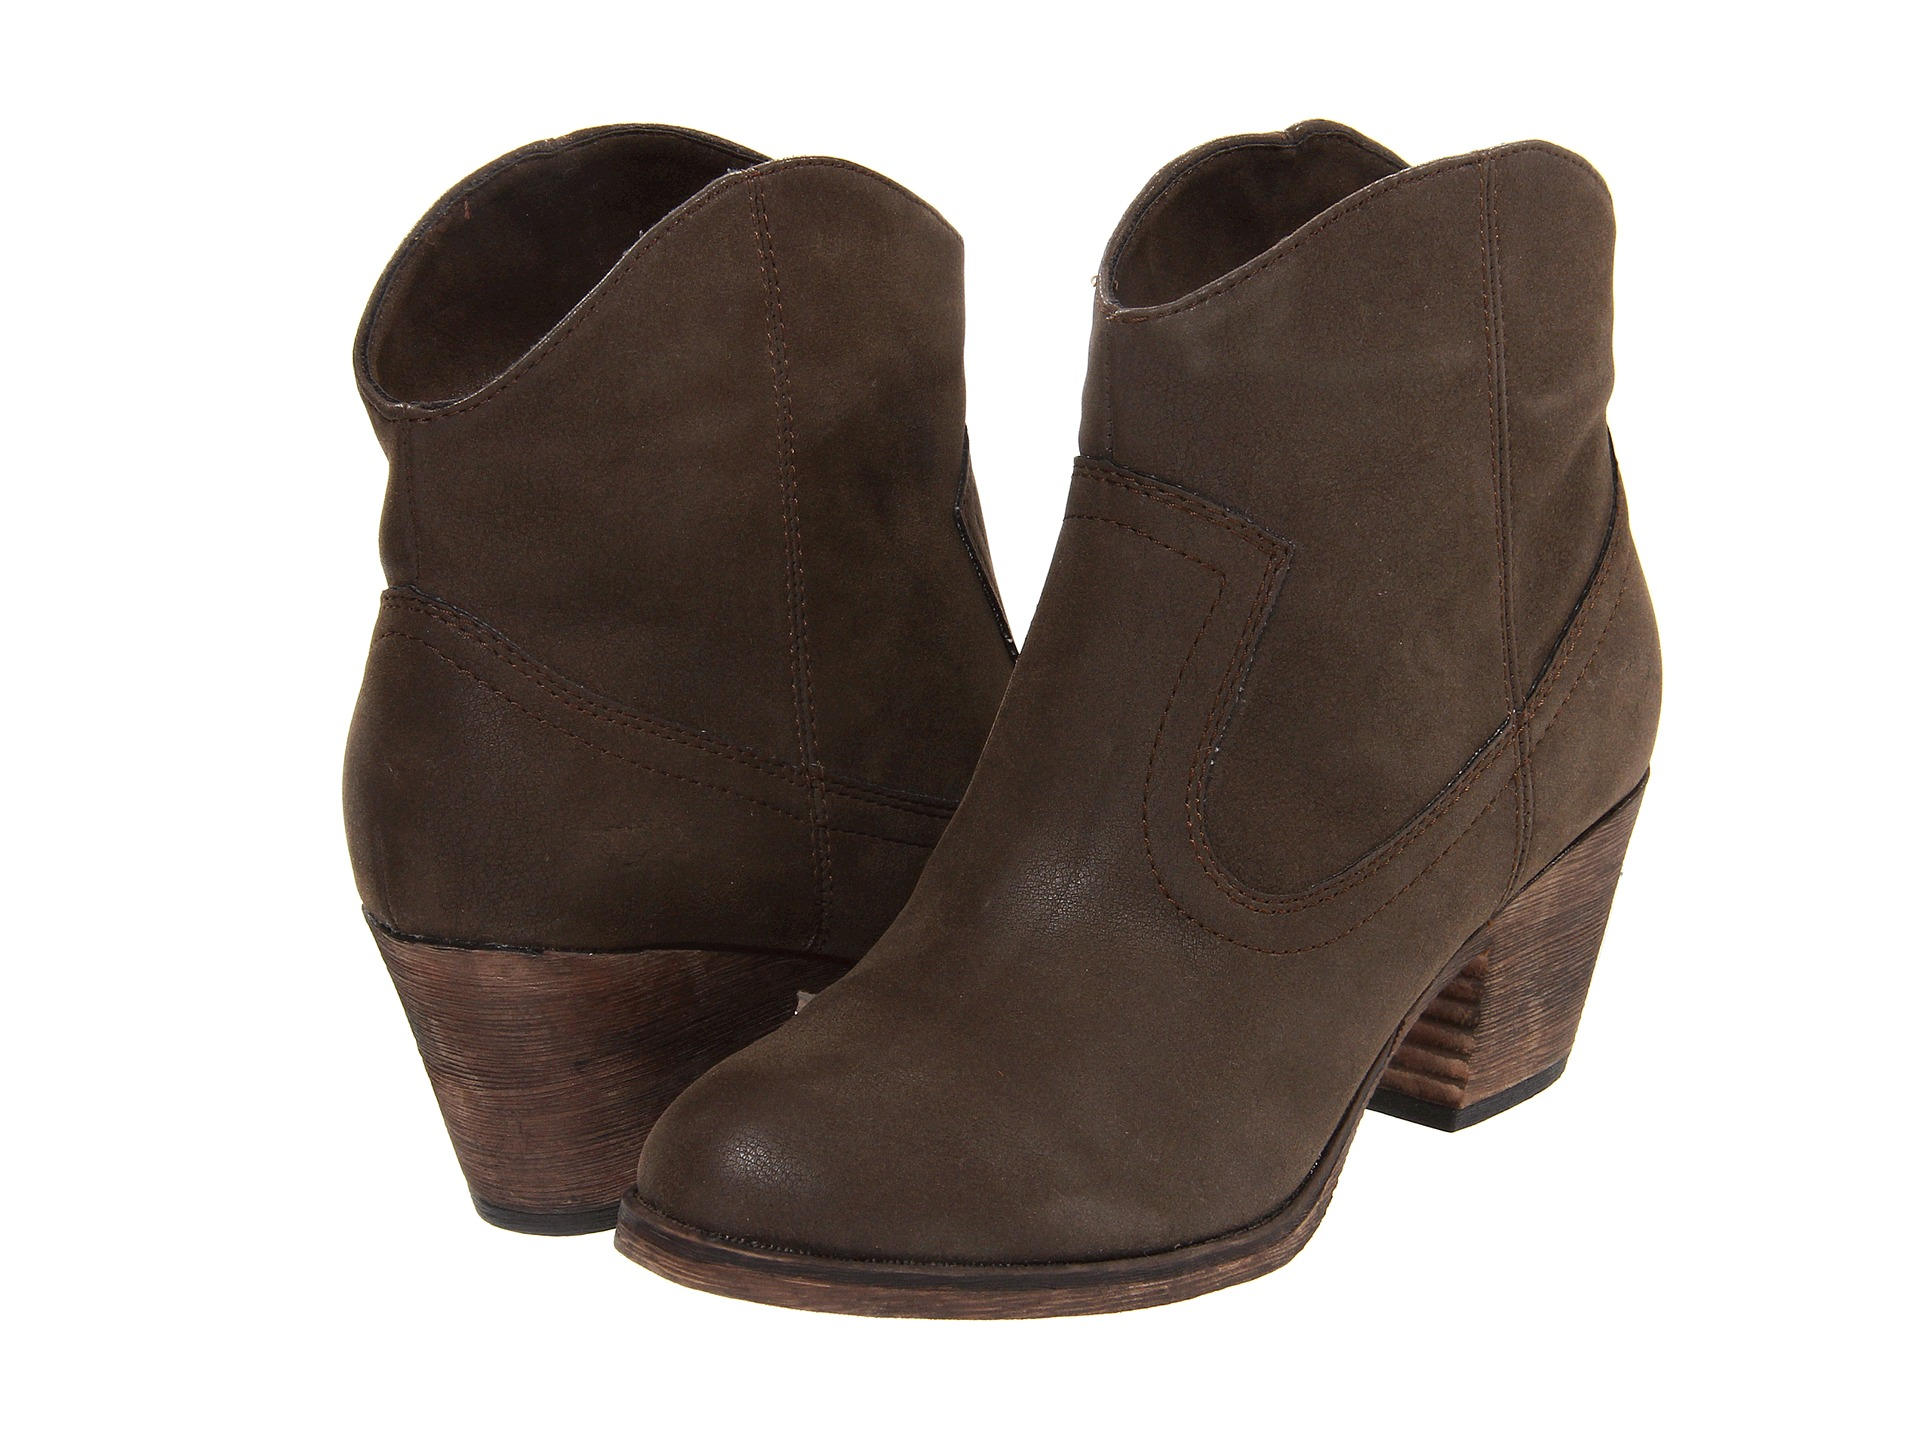 Boots, Cowboy Boots, Ankle | Shipped Free at Zappos